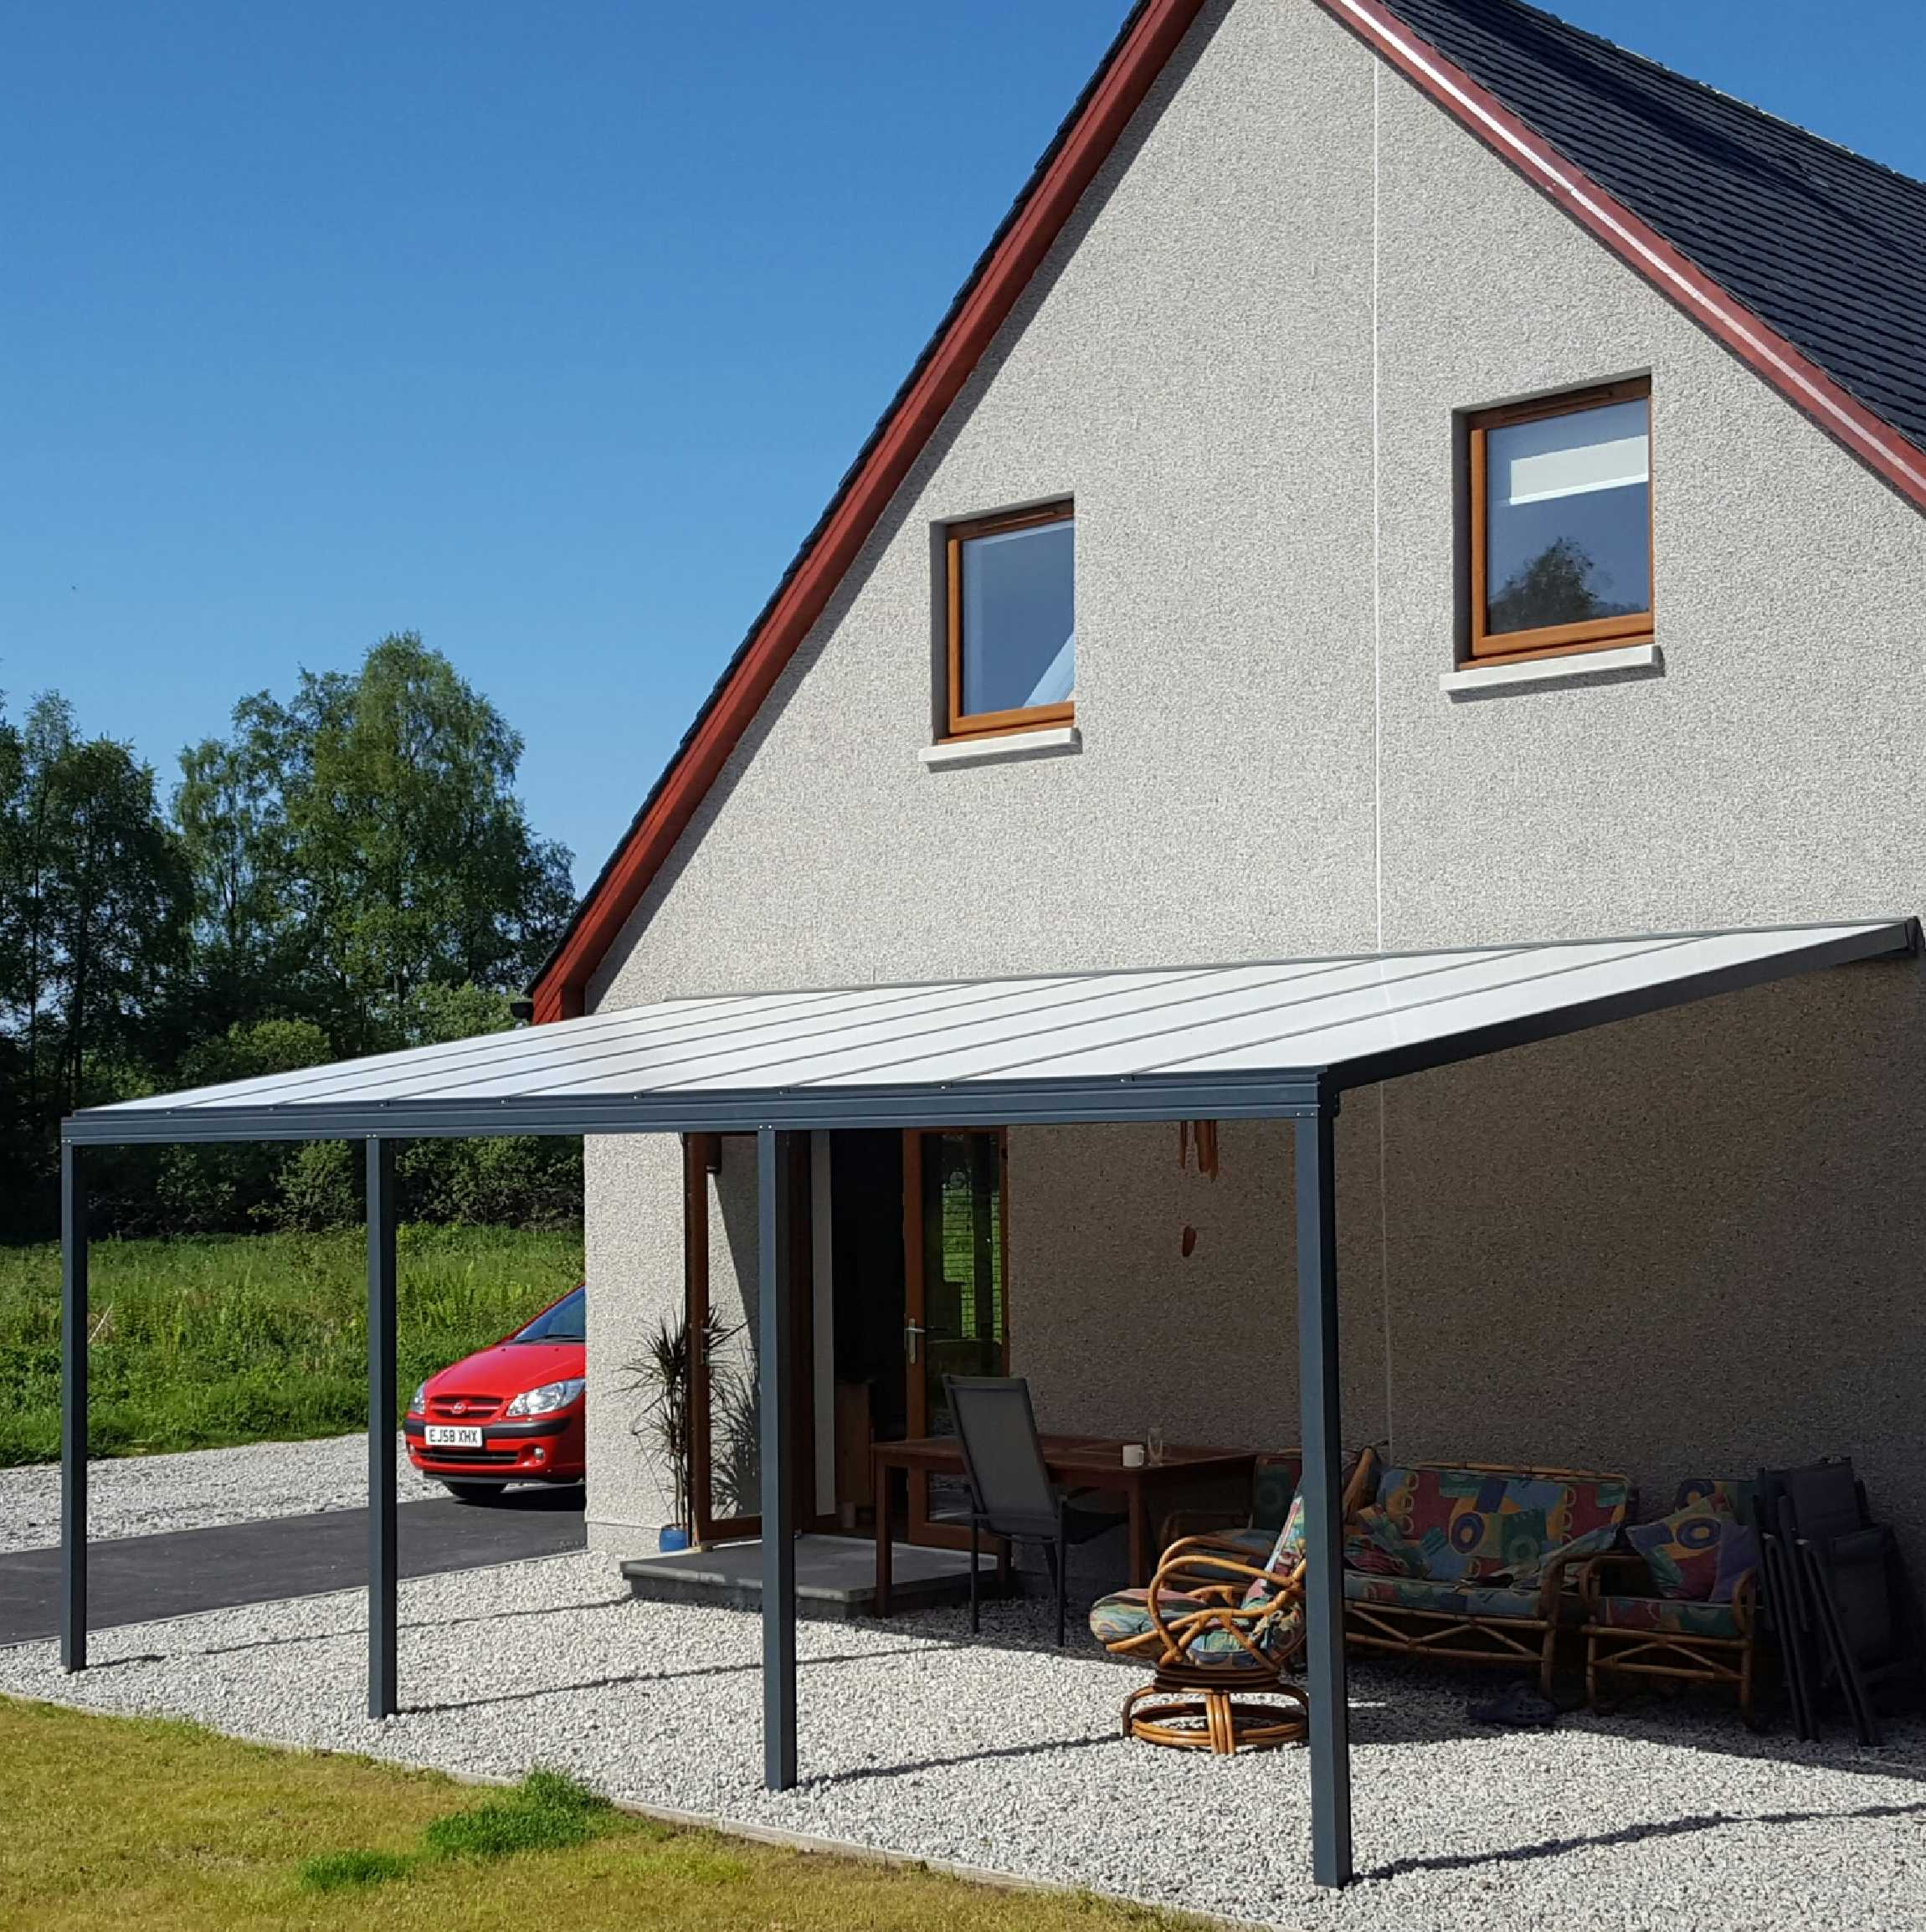 Great selection of Omega Smart Lean-To Canopy, Anthracite Grey, 16mm Polycarbonate Glazing - 10.6m (W) x 2.5m (P), (5) Supporting Posts